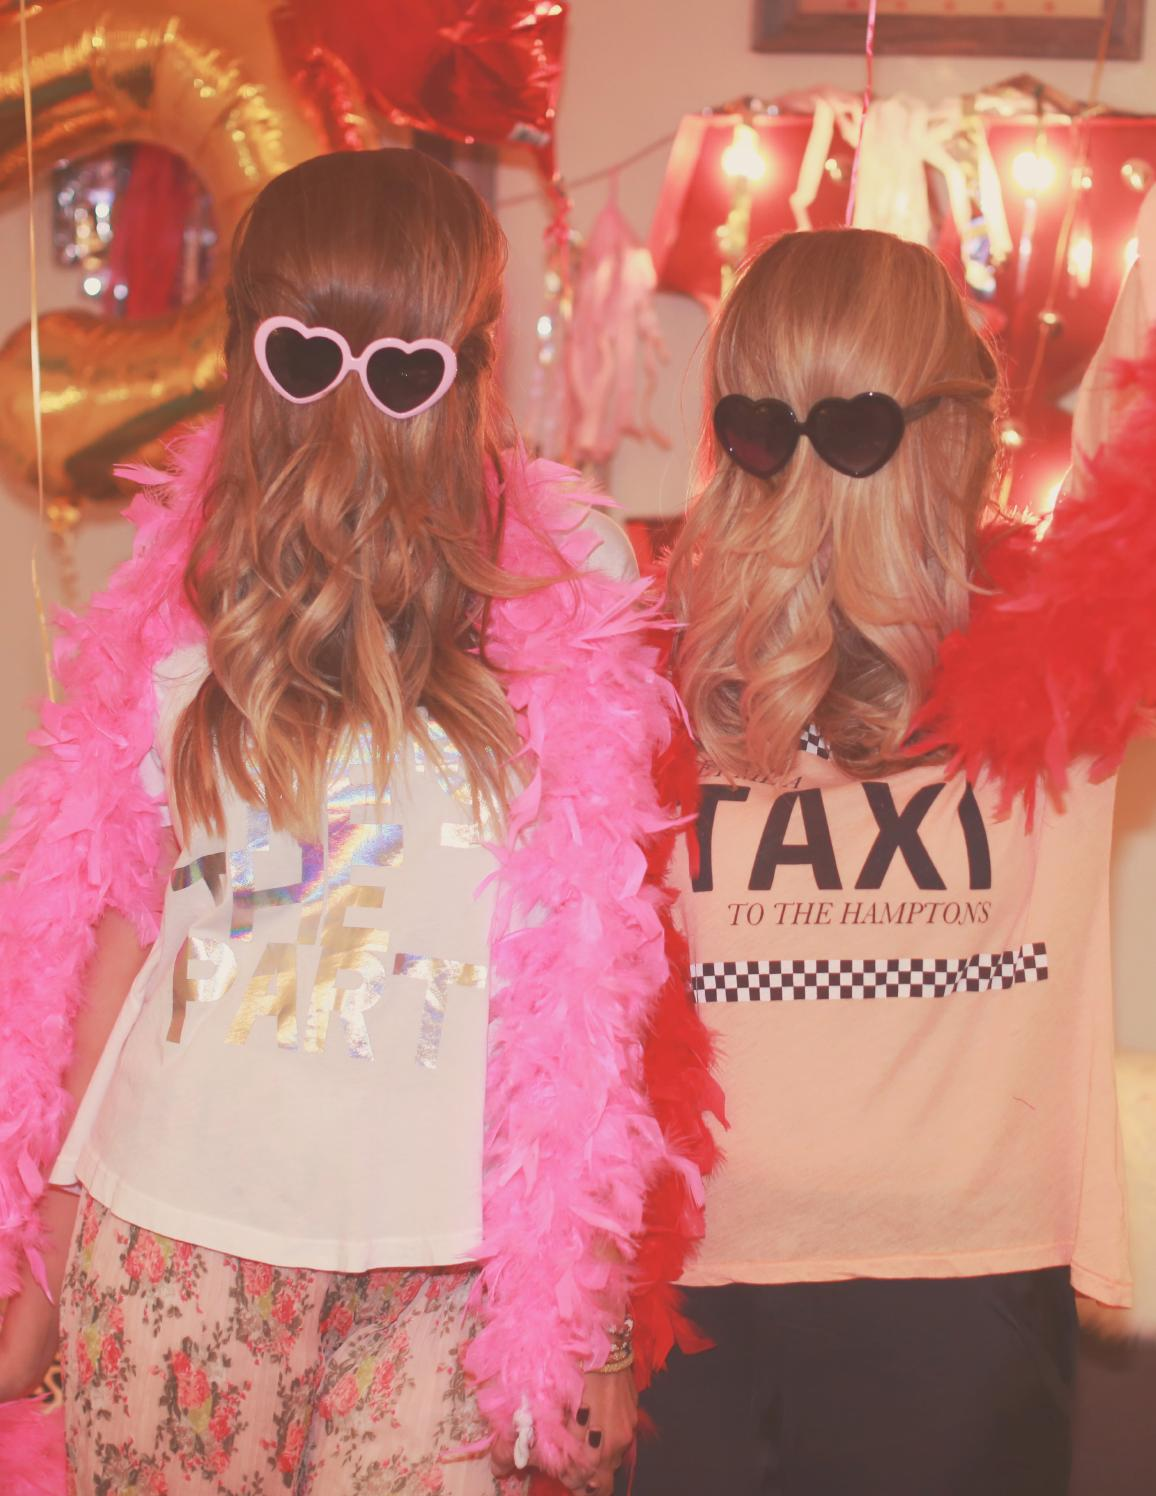 sophia webster, summer, fall, winter, spring, wildfox couture, bicyclette boutique, riff raff, a/w, s/s, outfit inspiration